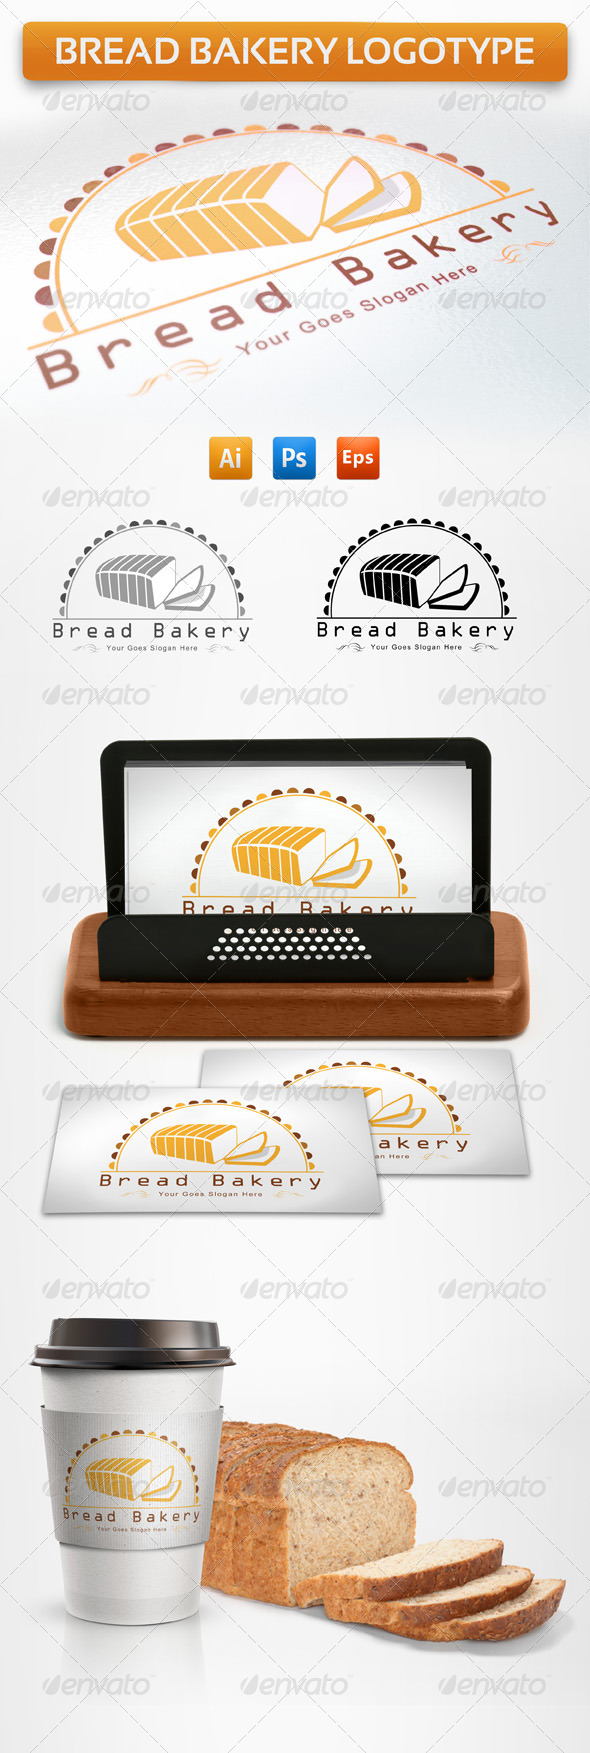 GraphicRiver Bread Bakery Logotype 5250645